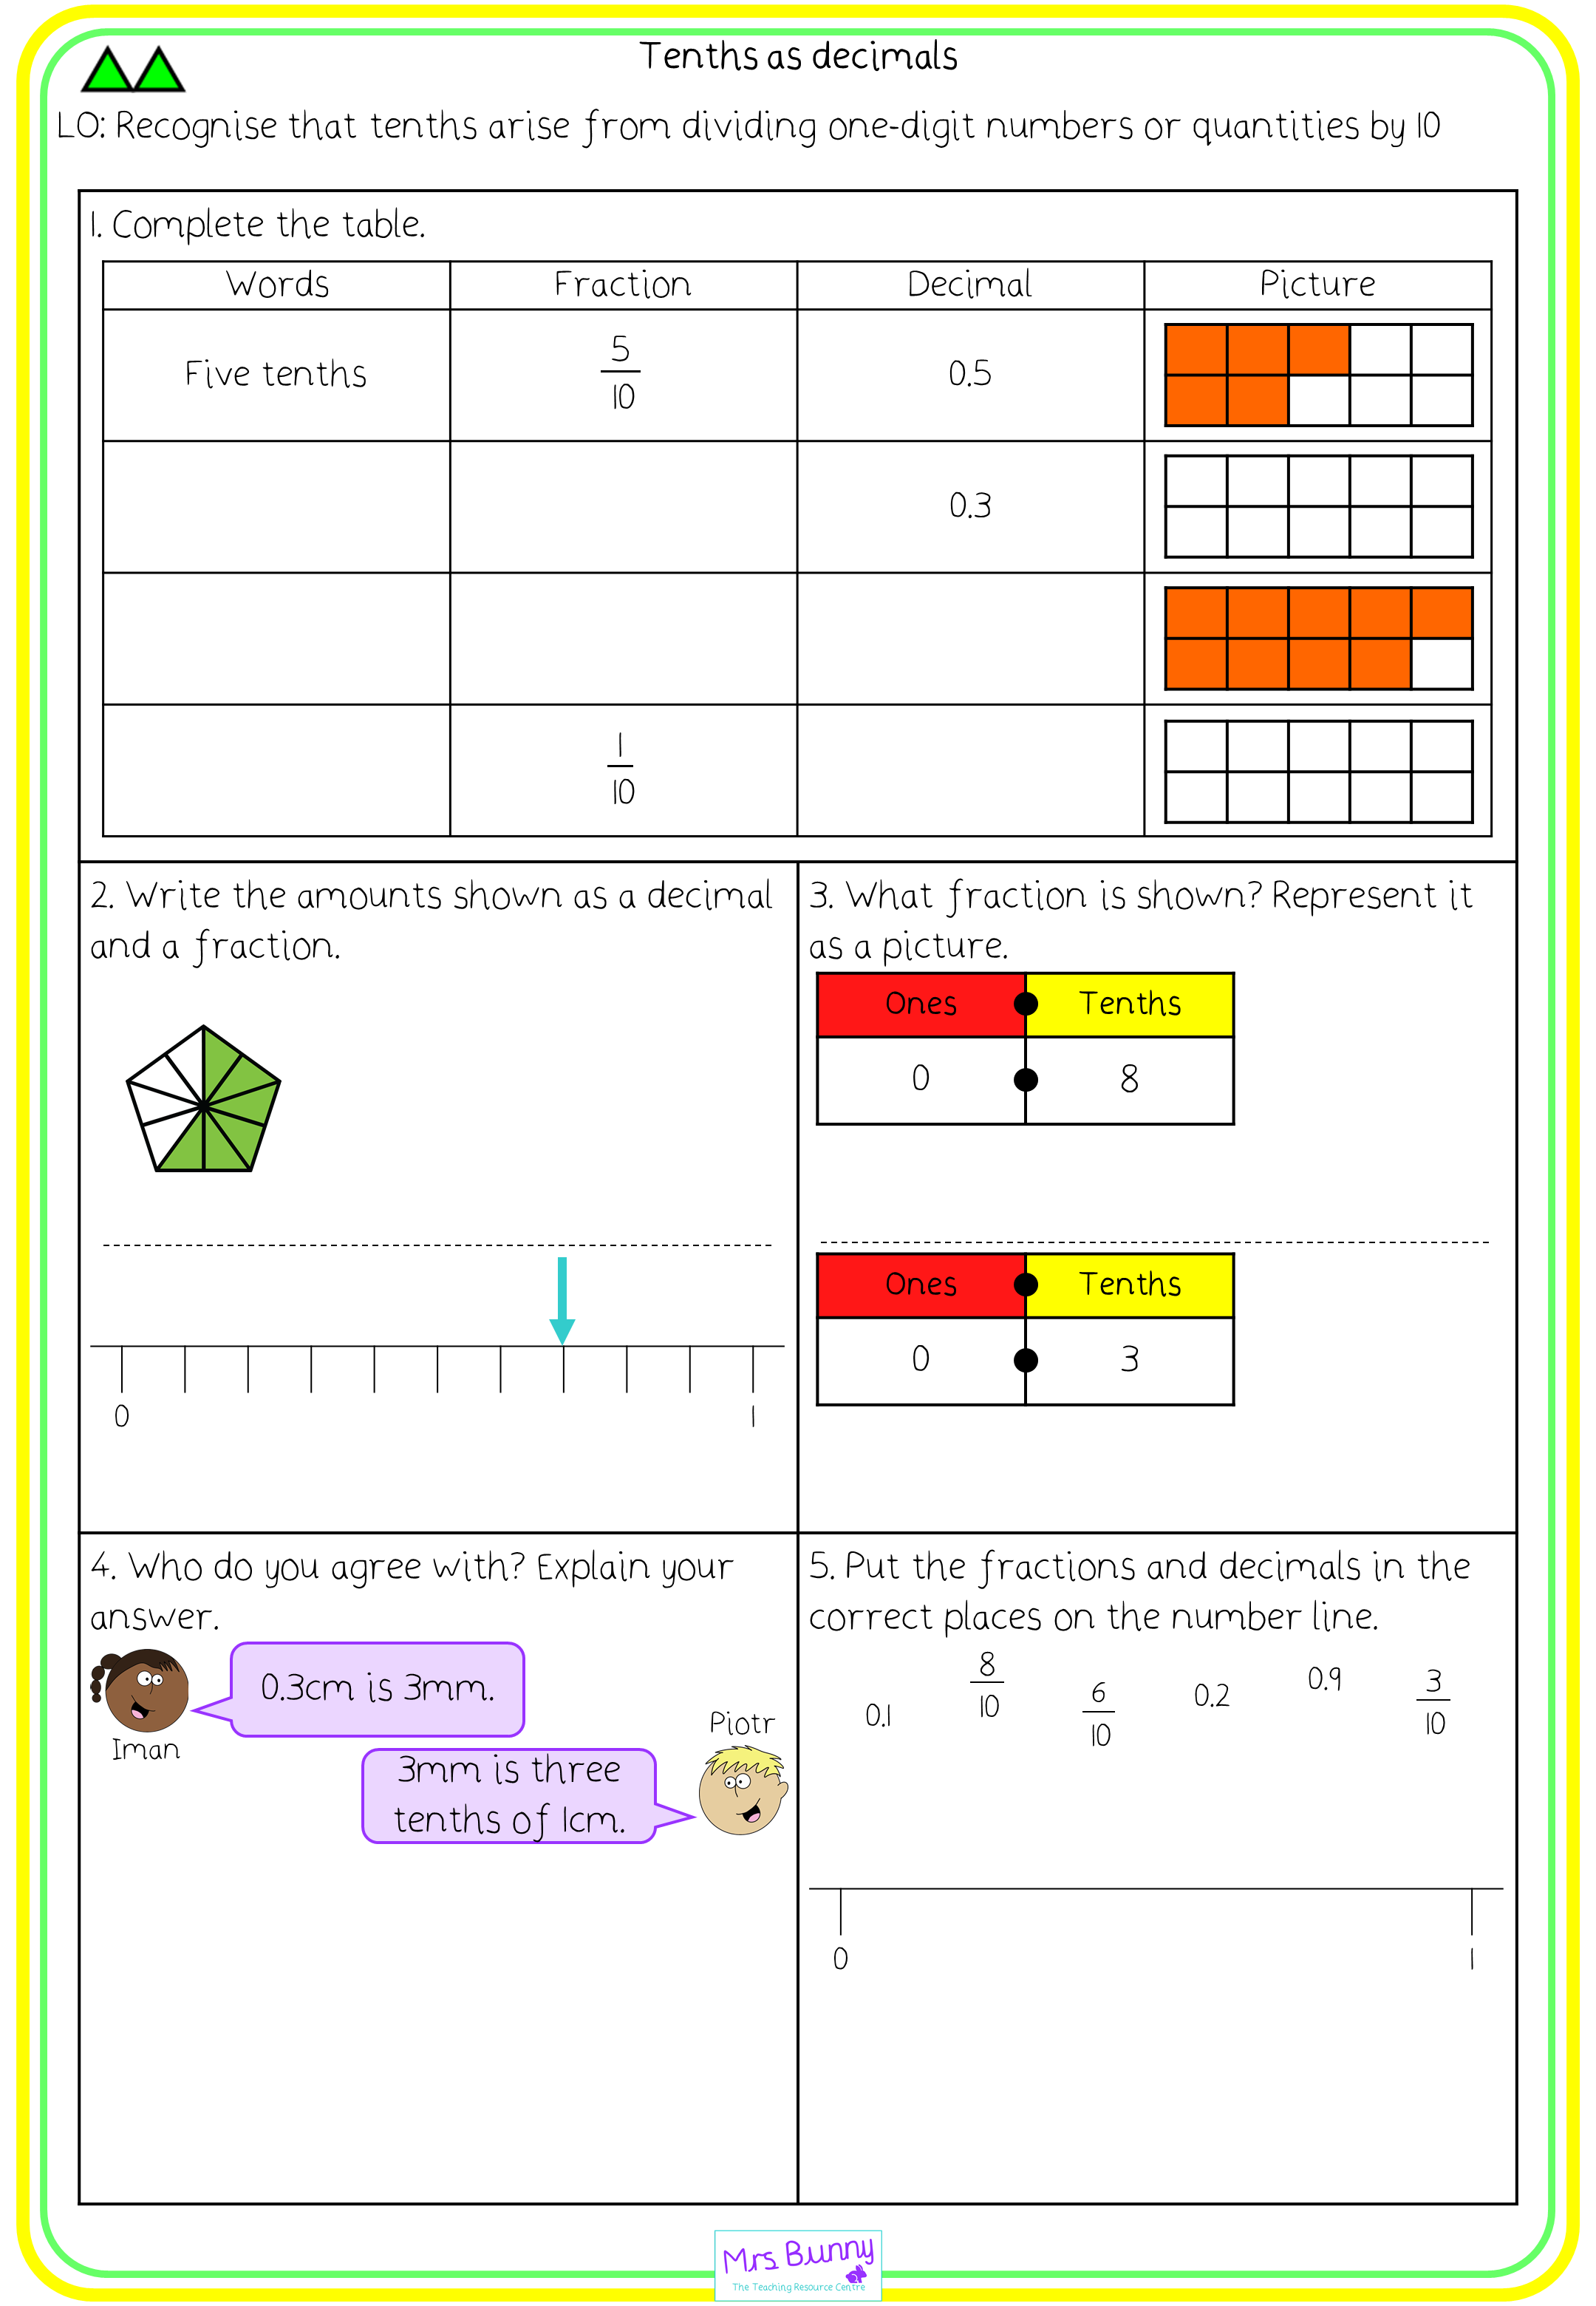 tenths as decimals worksheets year 3 fractions